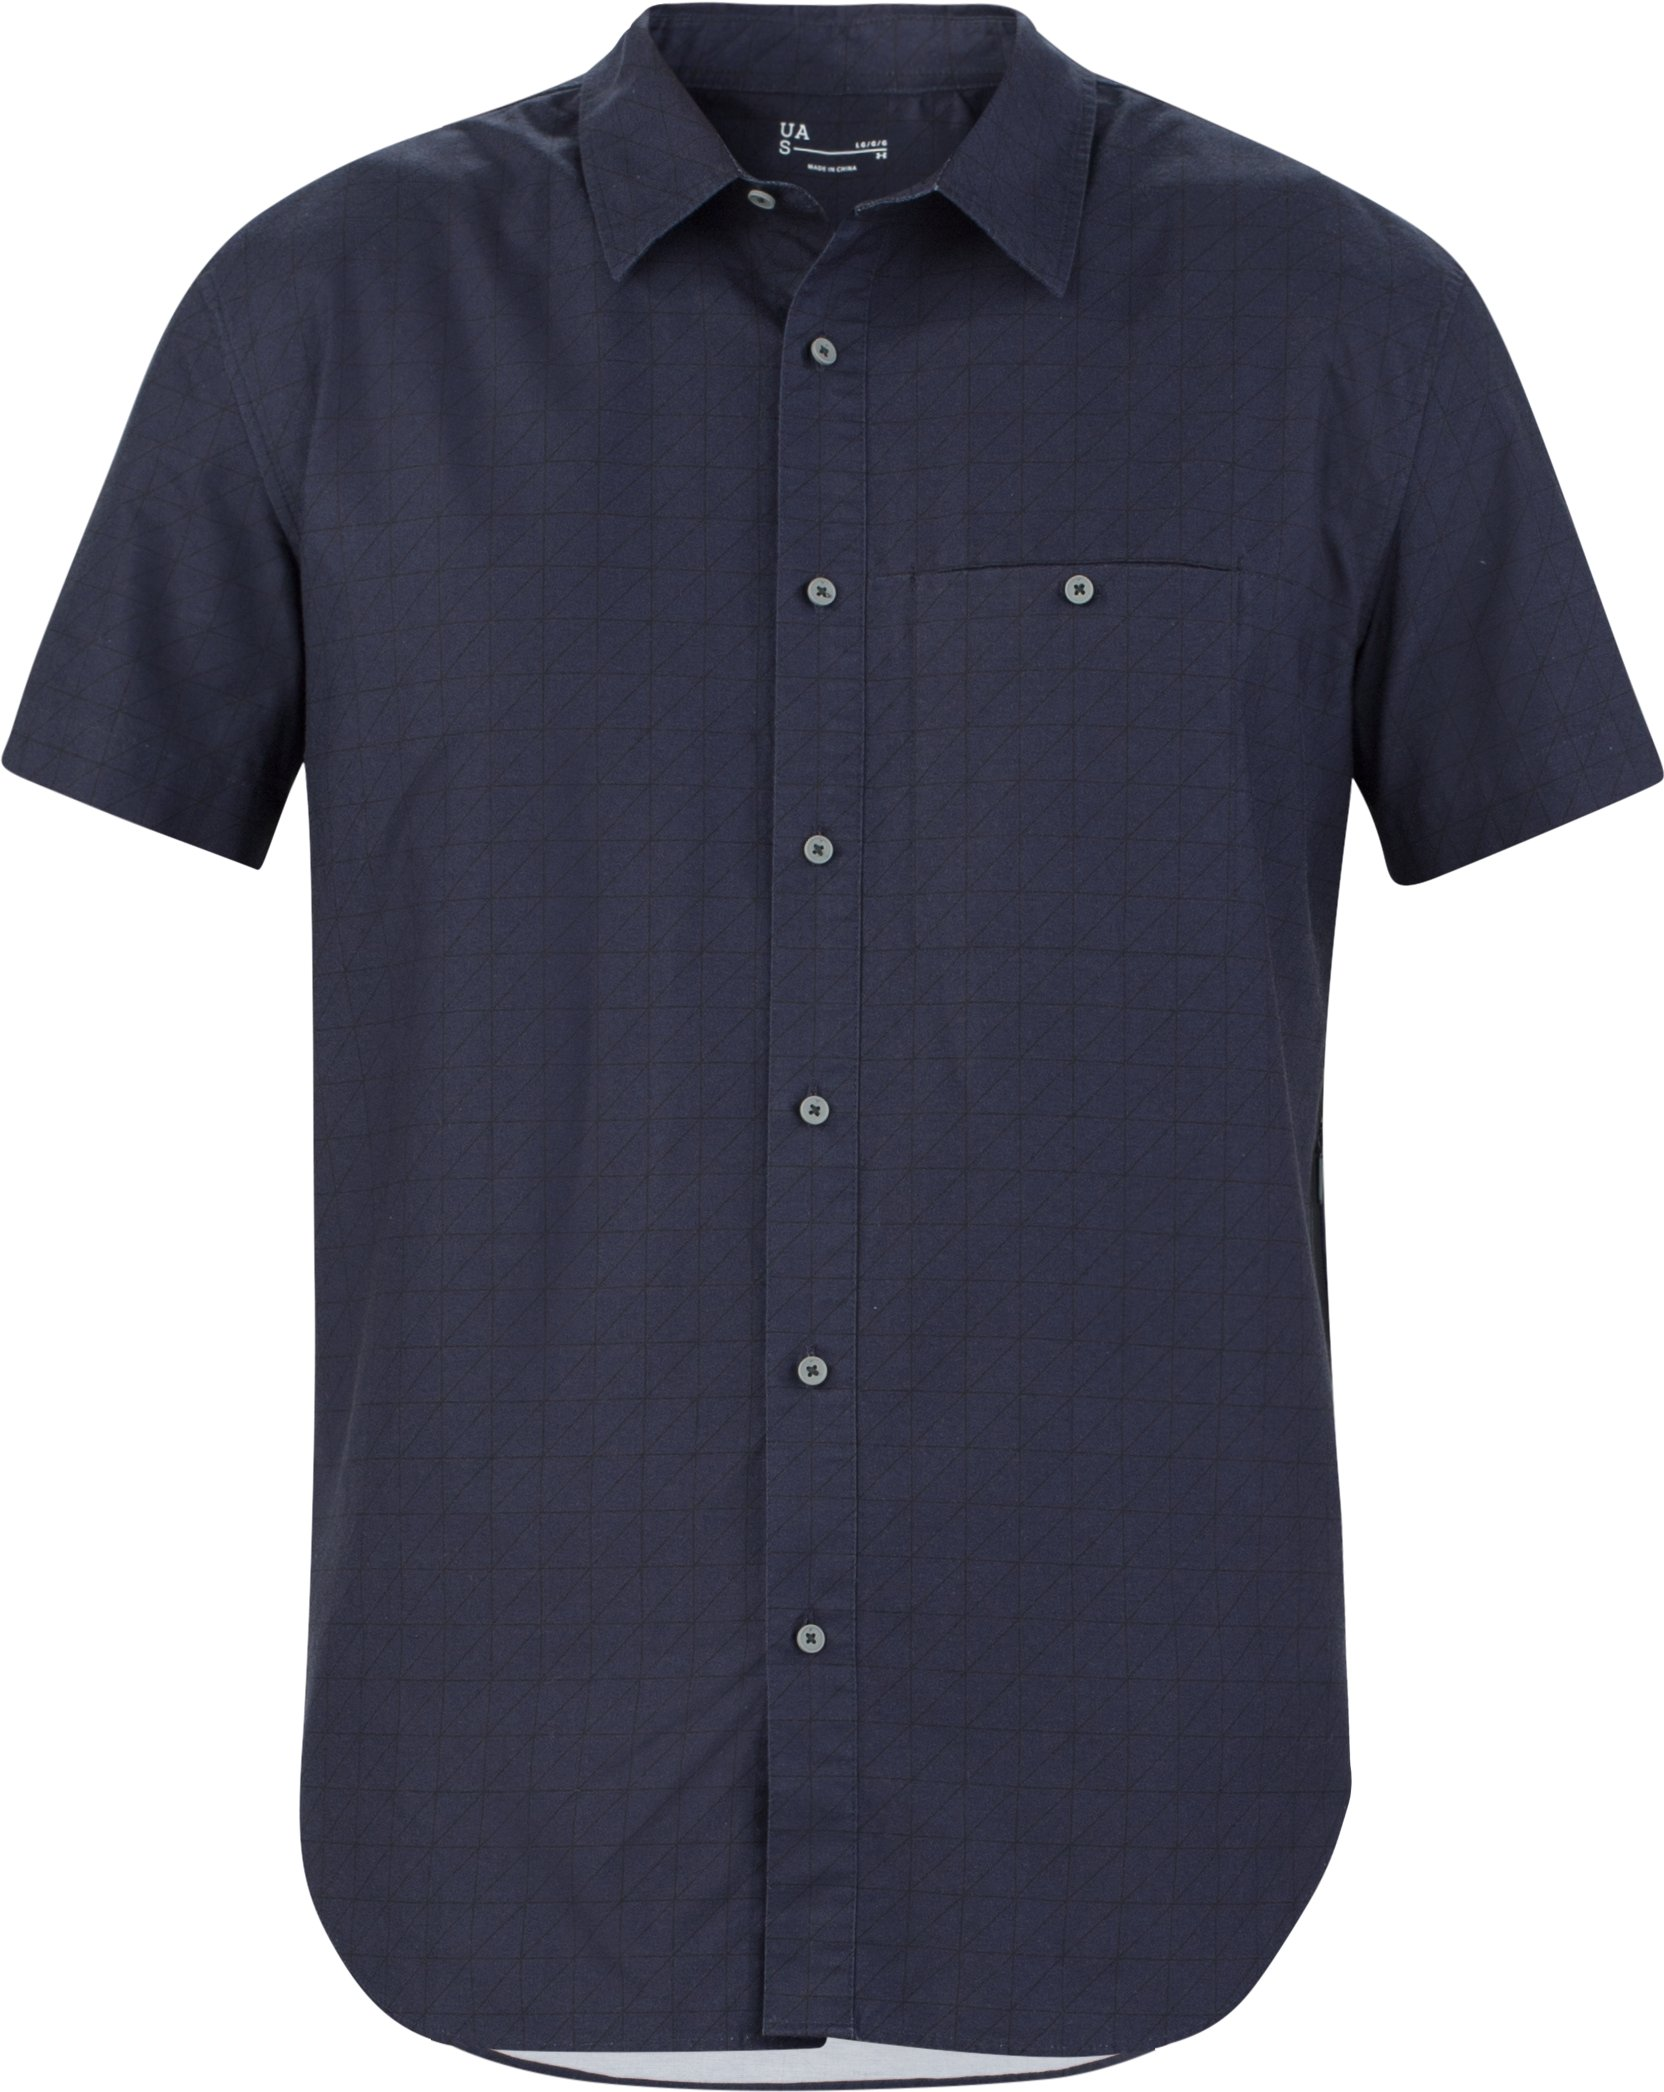 Men's UAS Draftday Pattern Oxford Short Sleeve, Navy, undefined